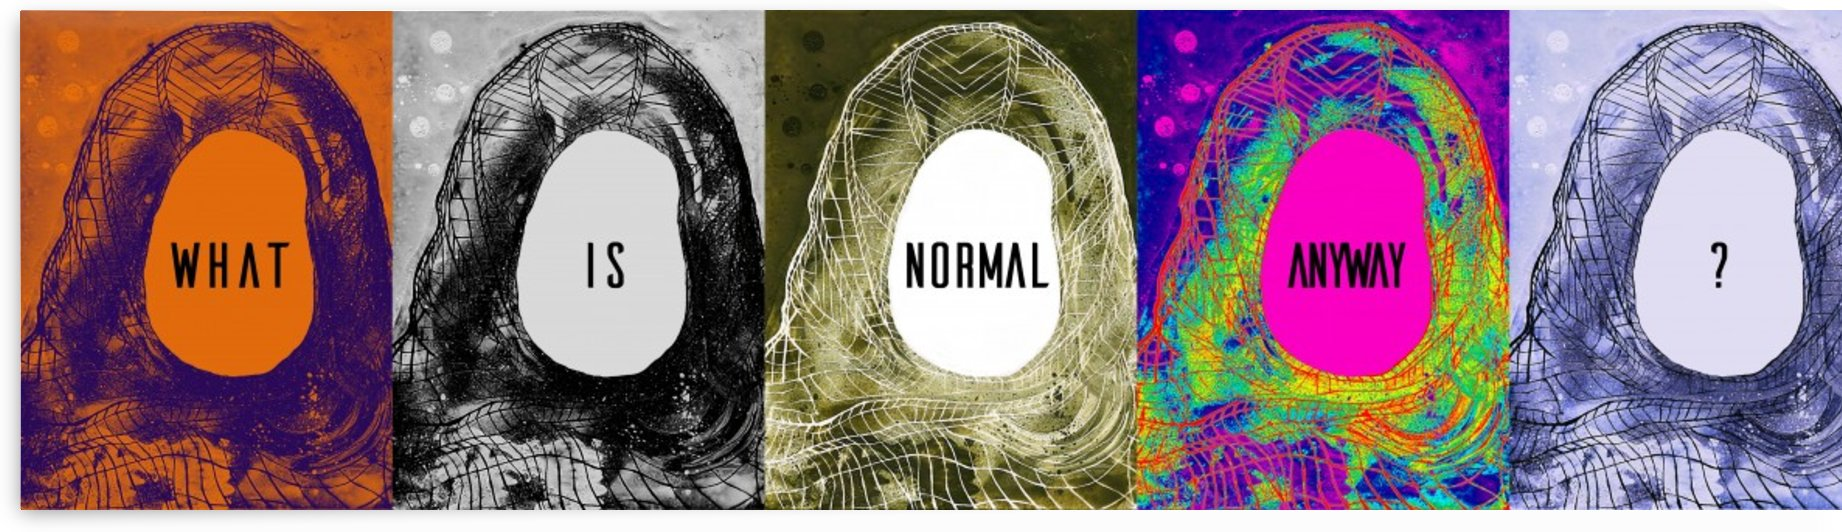 What Is Normal Anyway by Rana Obaid